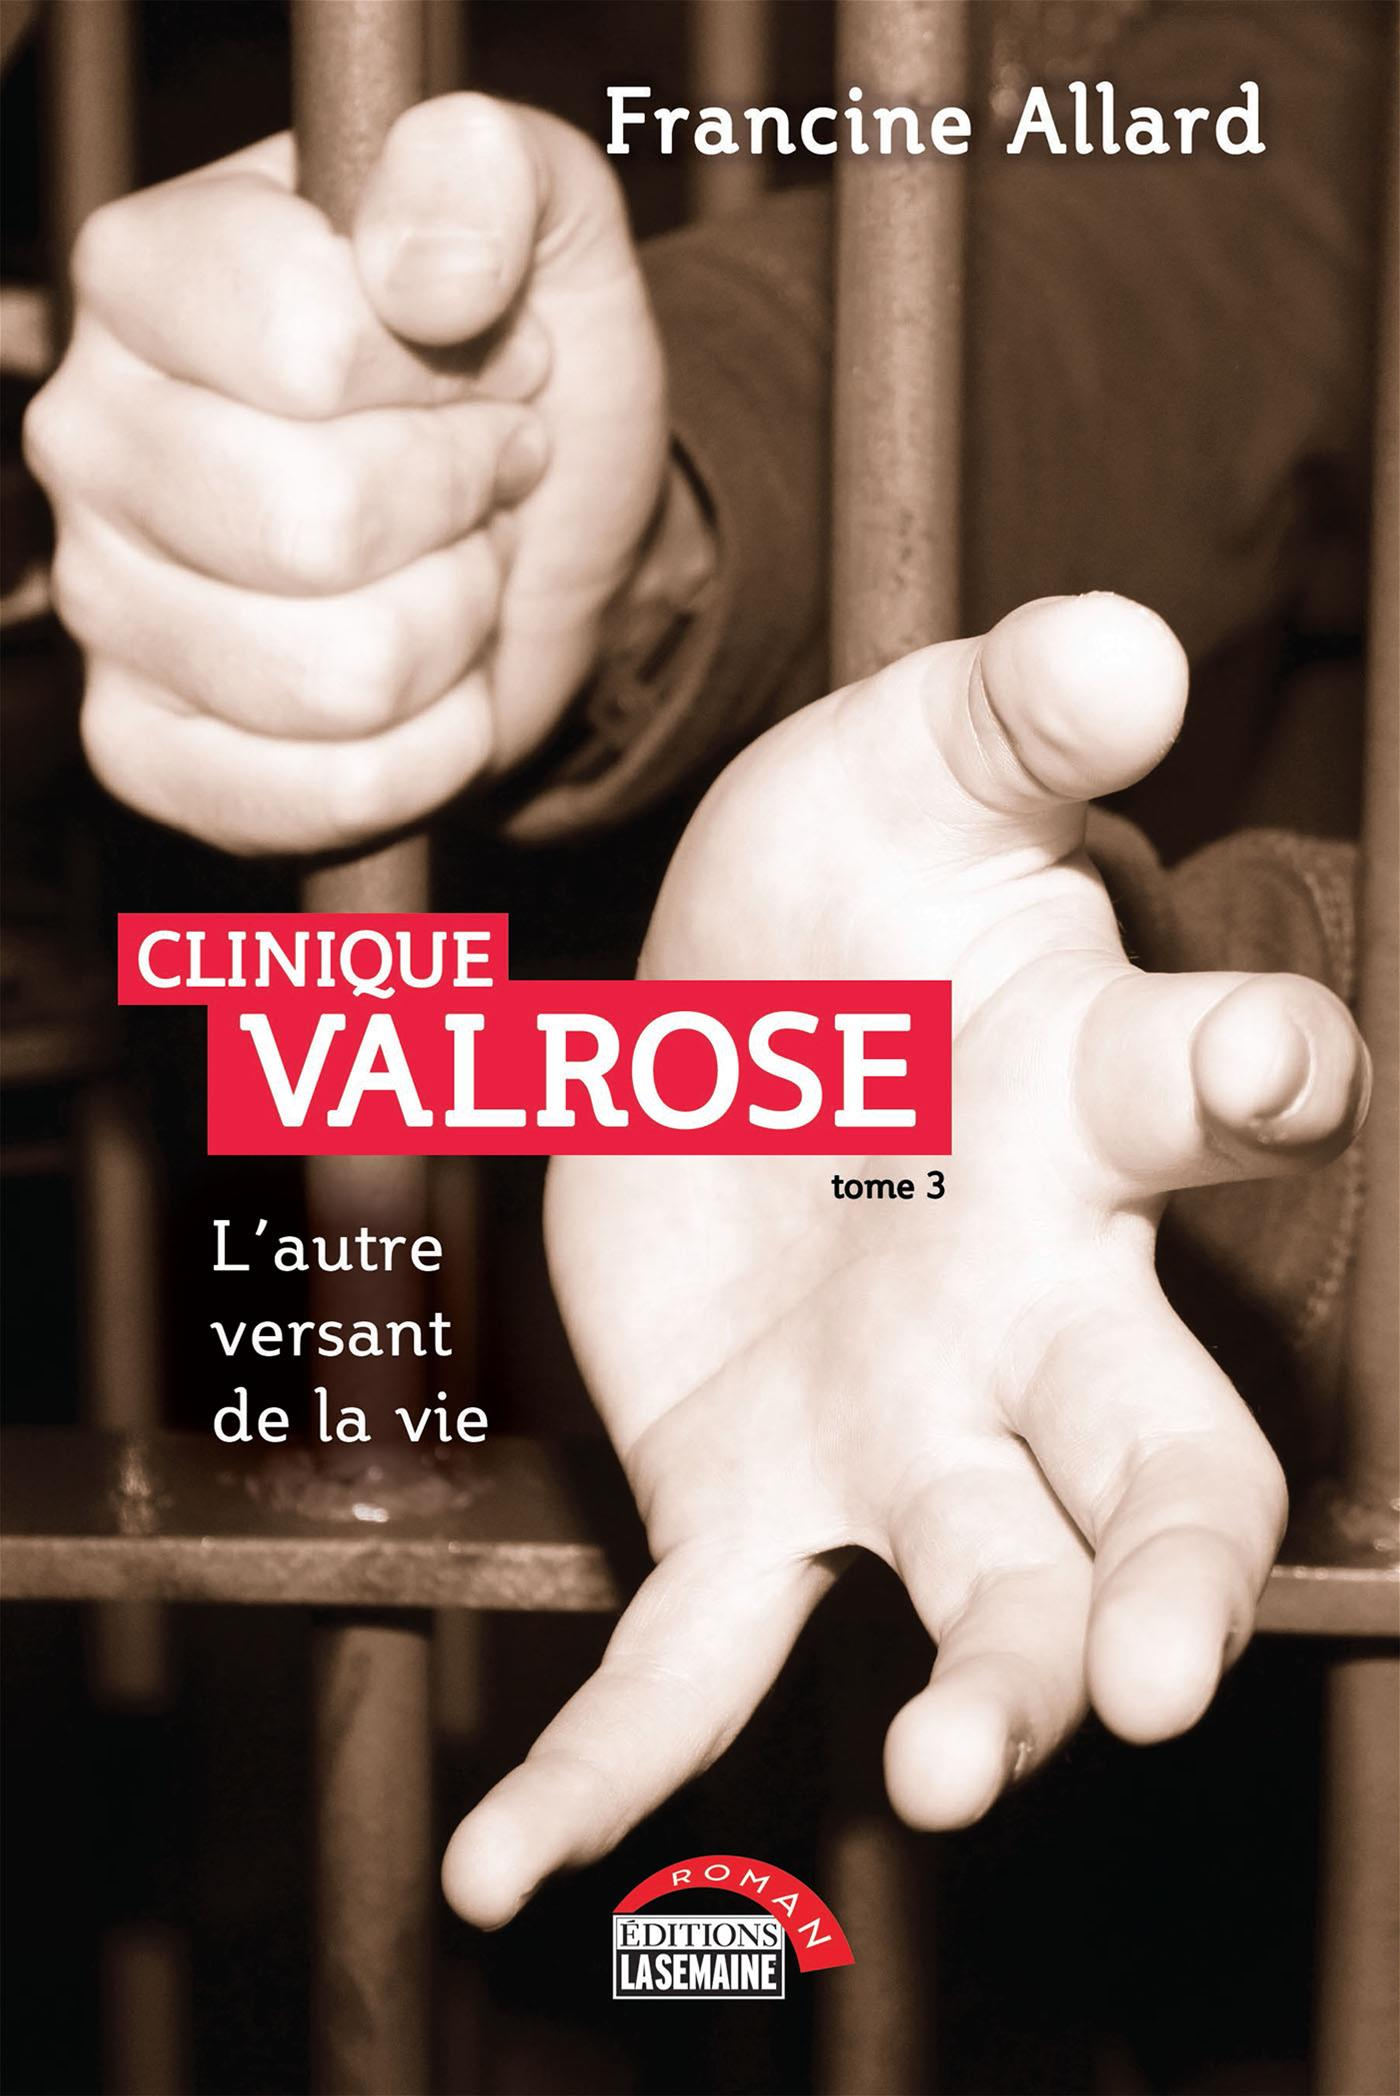 Clinique Valrose - Tome 3